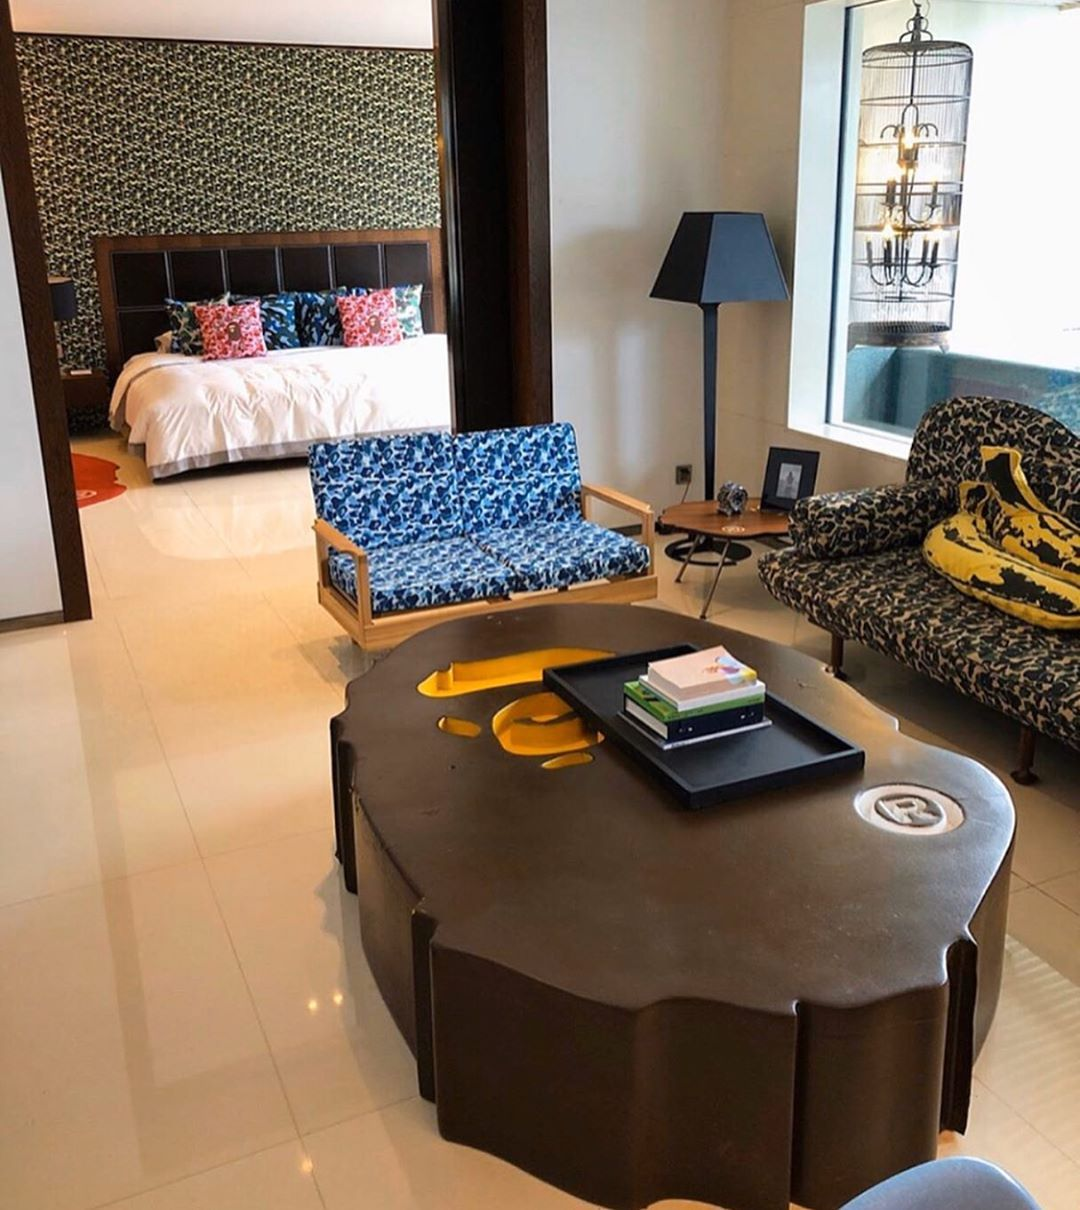 Art Encompasses All On Instagram League Hotels The Bape Suite At The Hotel Eclat In Beijing Home Room Design Aesthetic Room Decor Dream Living Rooms